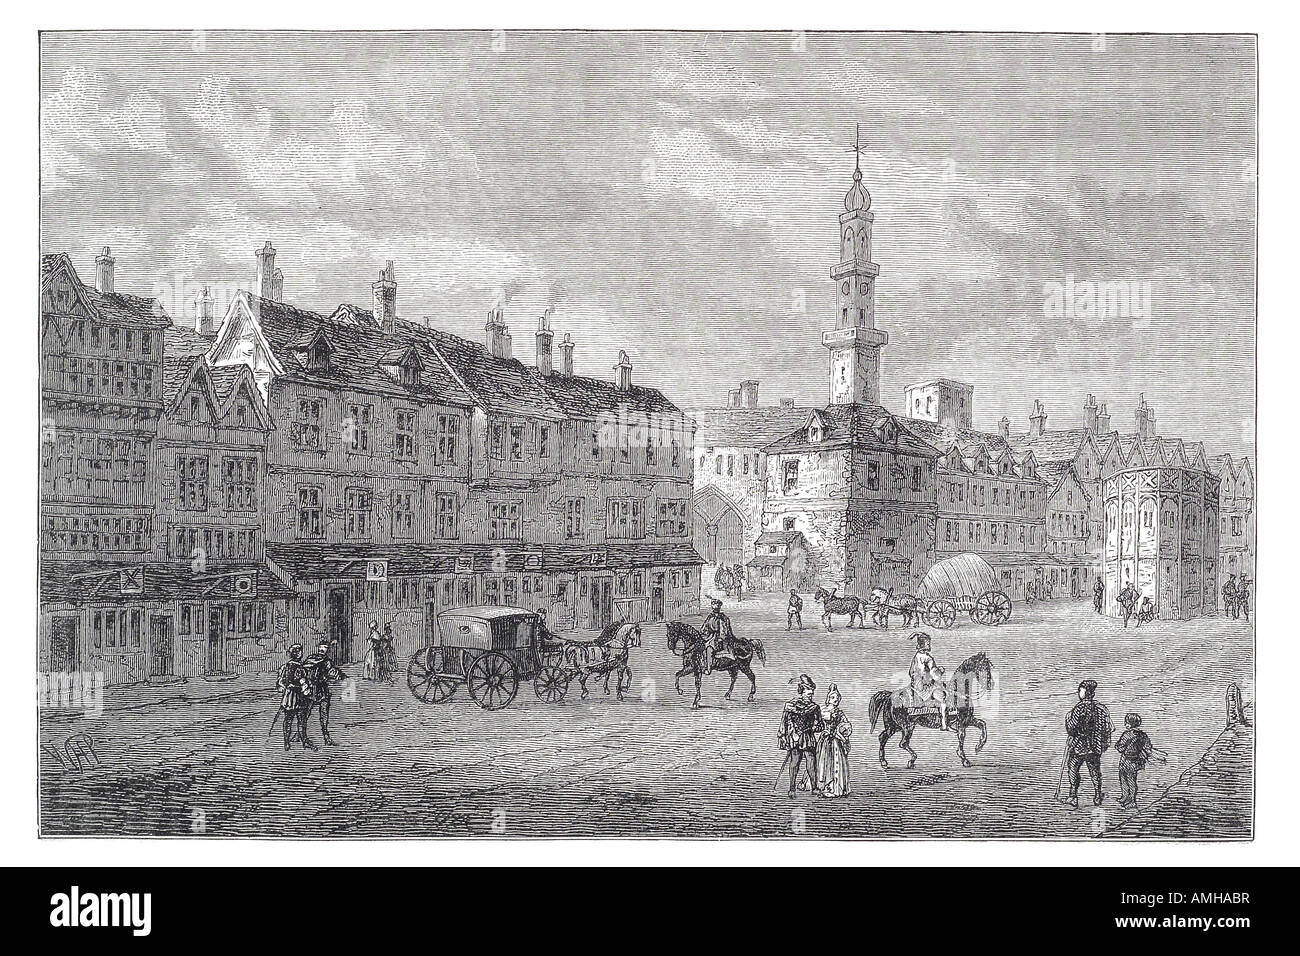 1630 cornhill street pavement exterior view horse cart residence building cobbles tower London City capital England - Stock Image